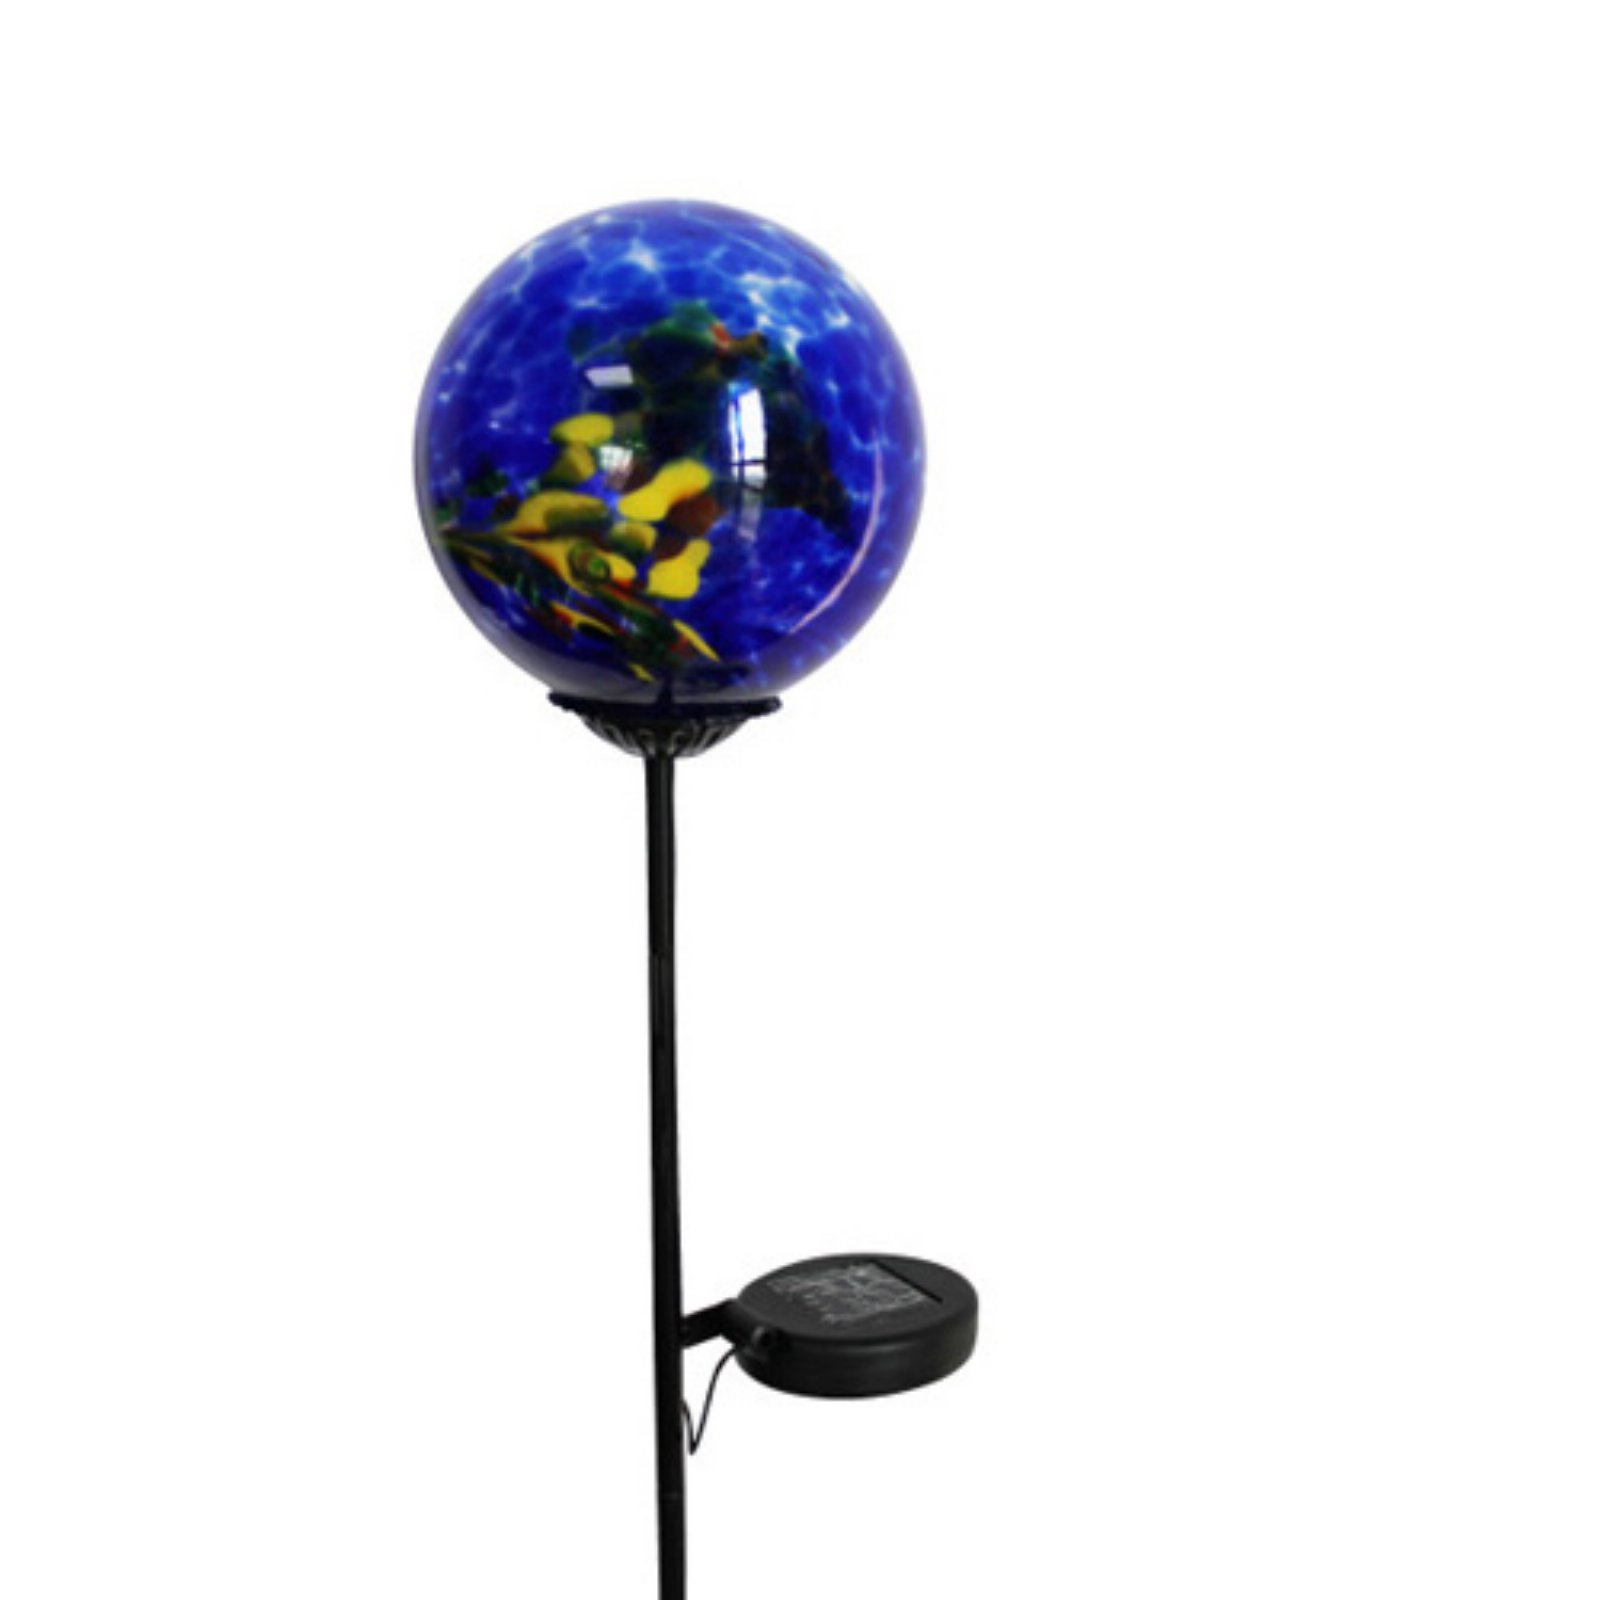 Moonrays 92563 Solar Powered White Led Swirled Glass Gazing Ball Stake Light by Coleman Cable Inc